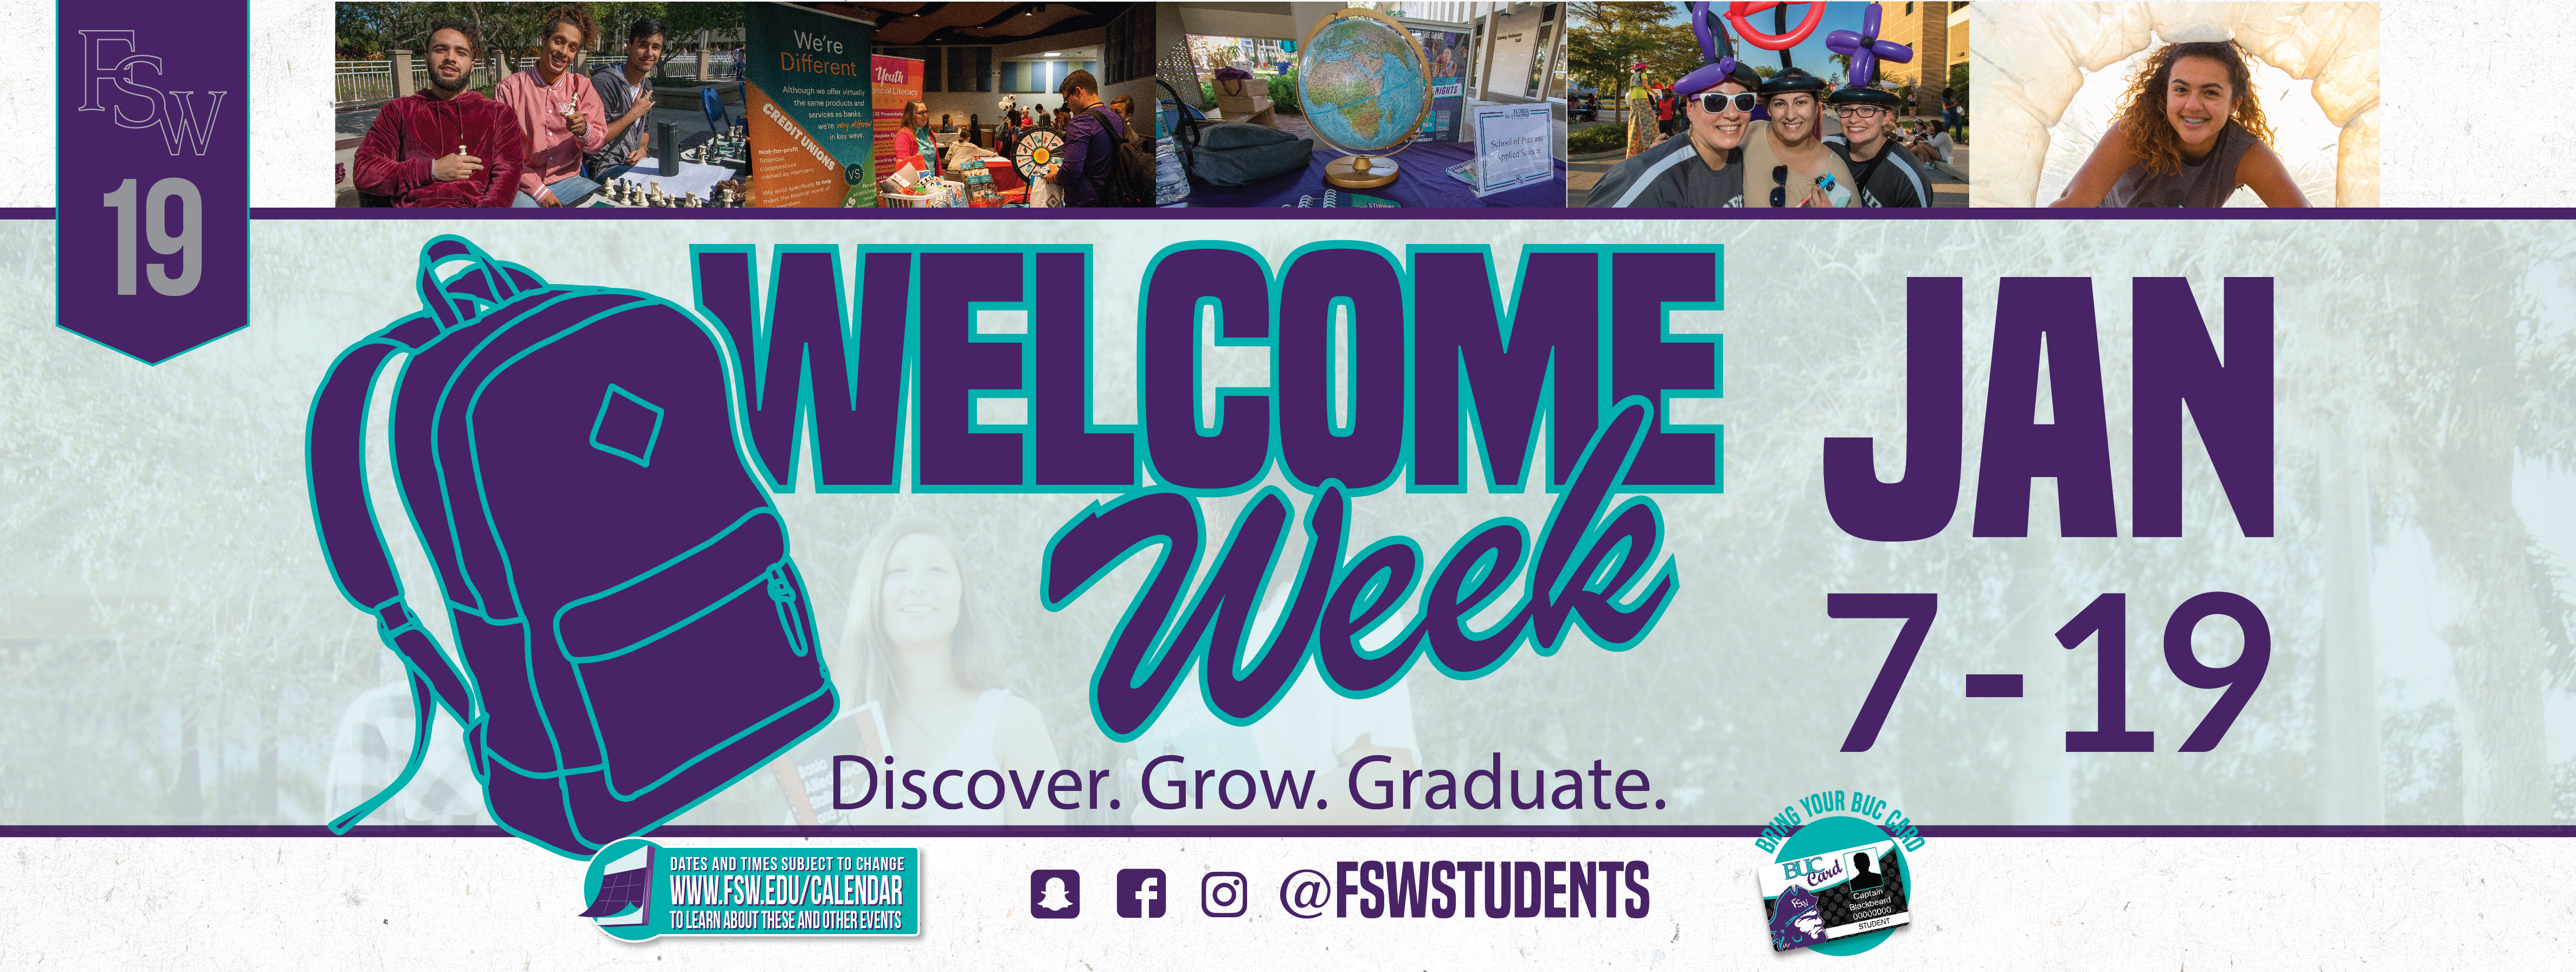 Welcome Week January 7-19, 2019